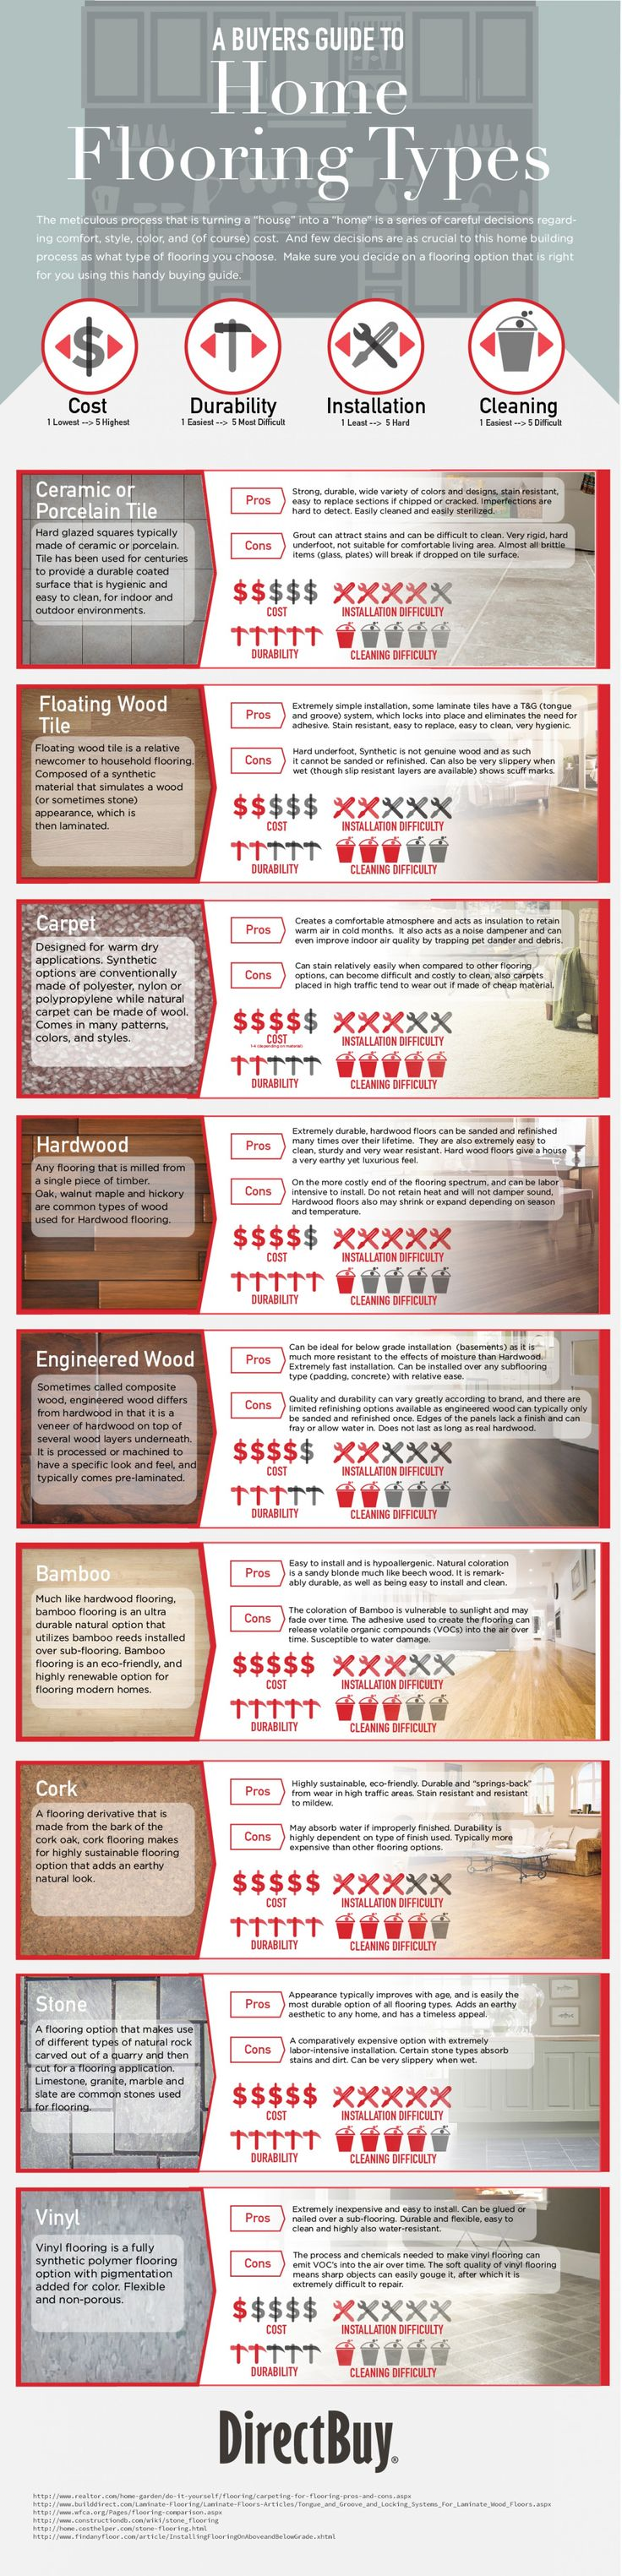 A Buyers Guide to Custom Home Flooring Types #Infographic interior design cheat sheet. Spacesthatspeak.com